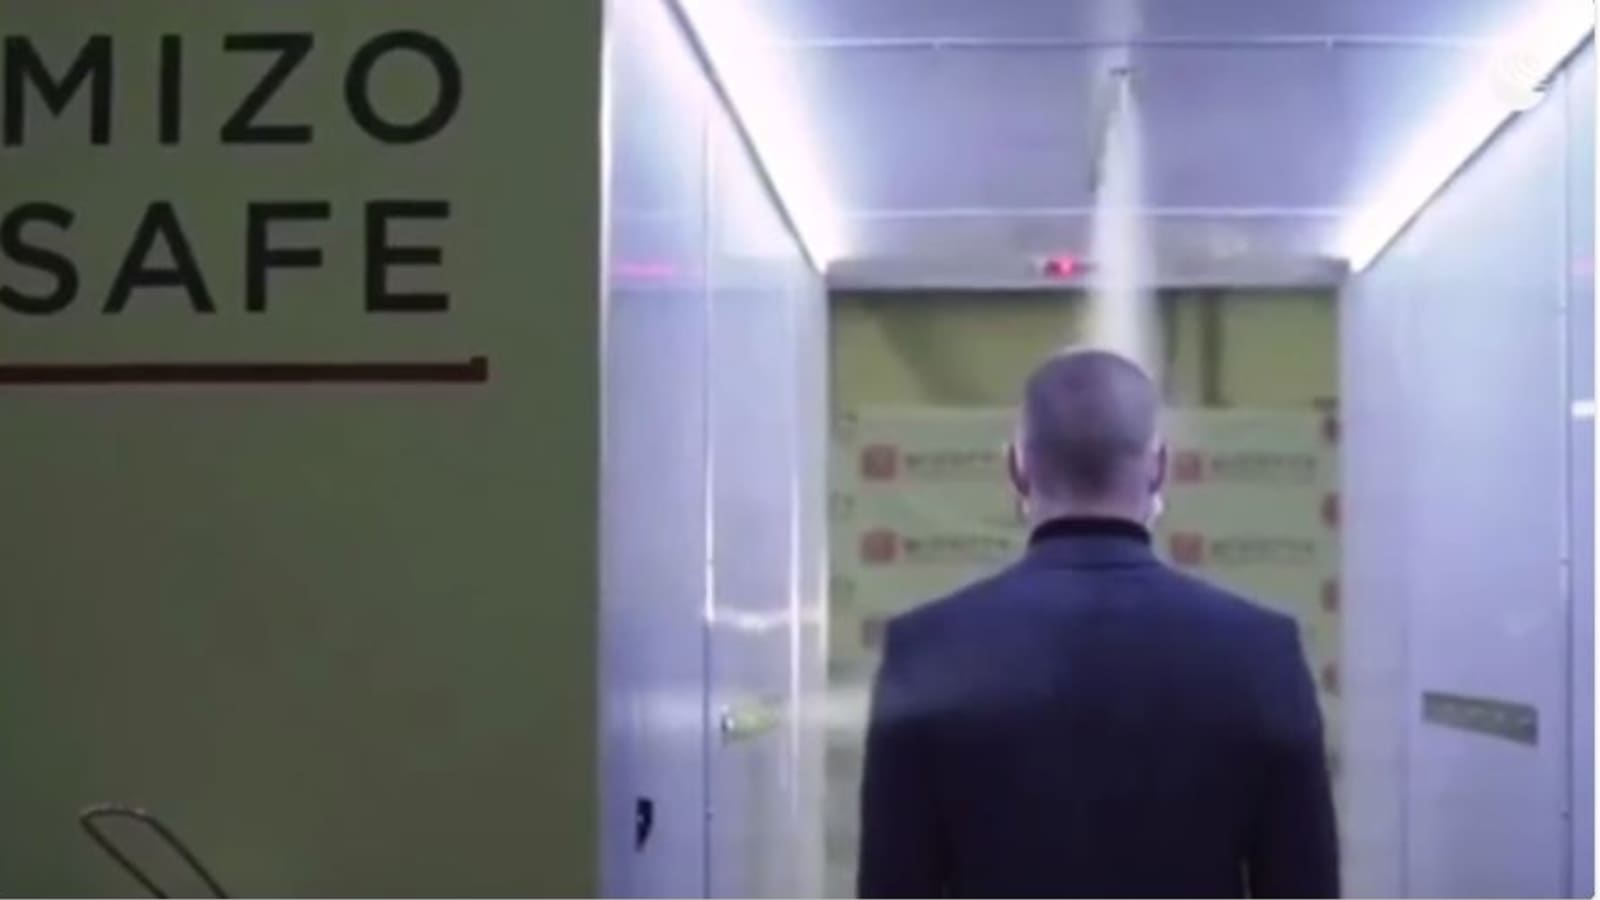 Putin Has A Disinfection Tunnel To Protect Him From The Coronavirus